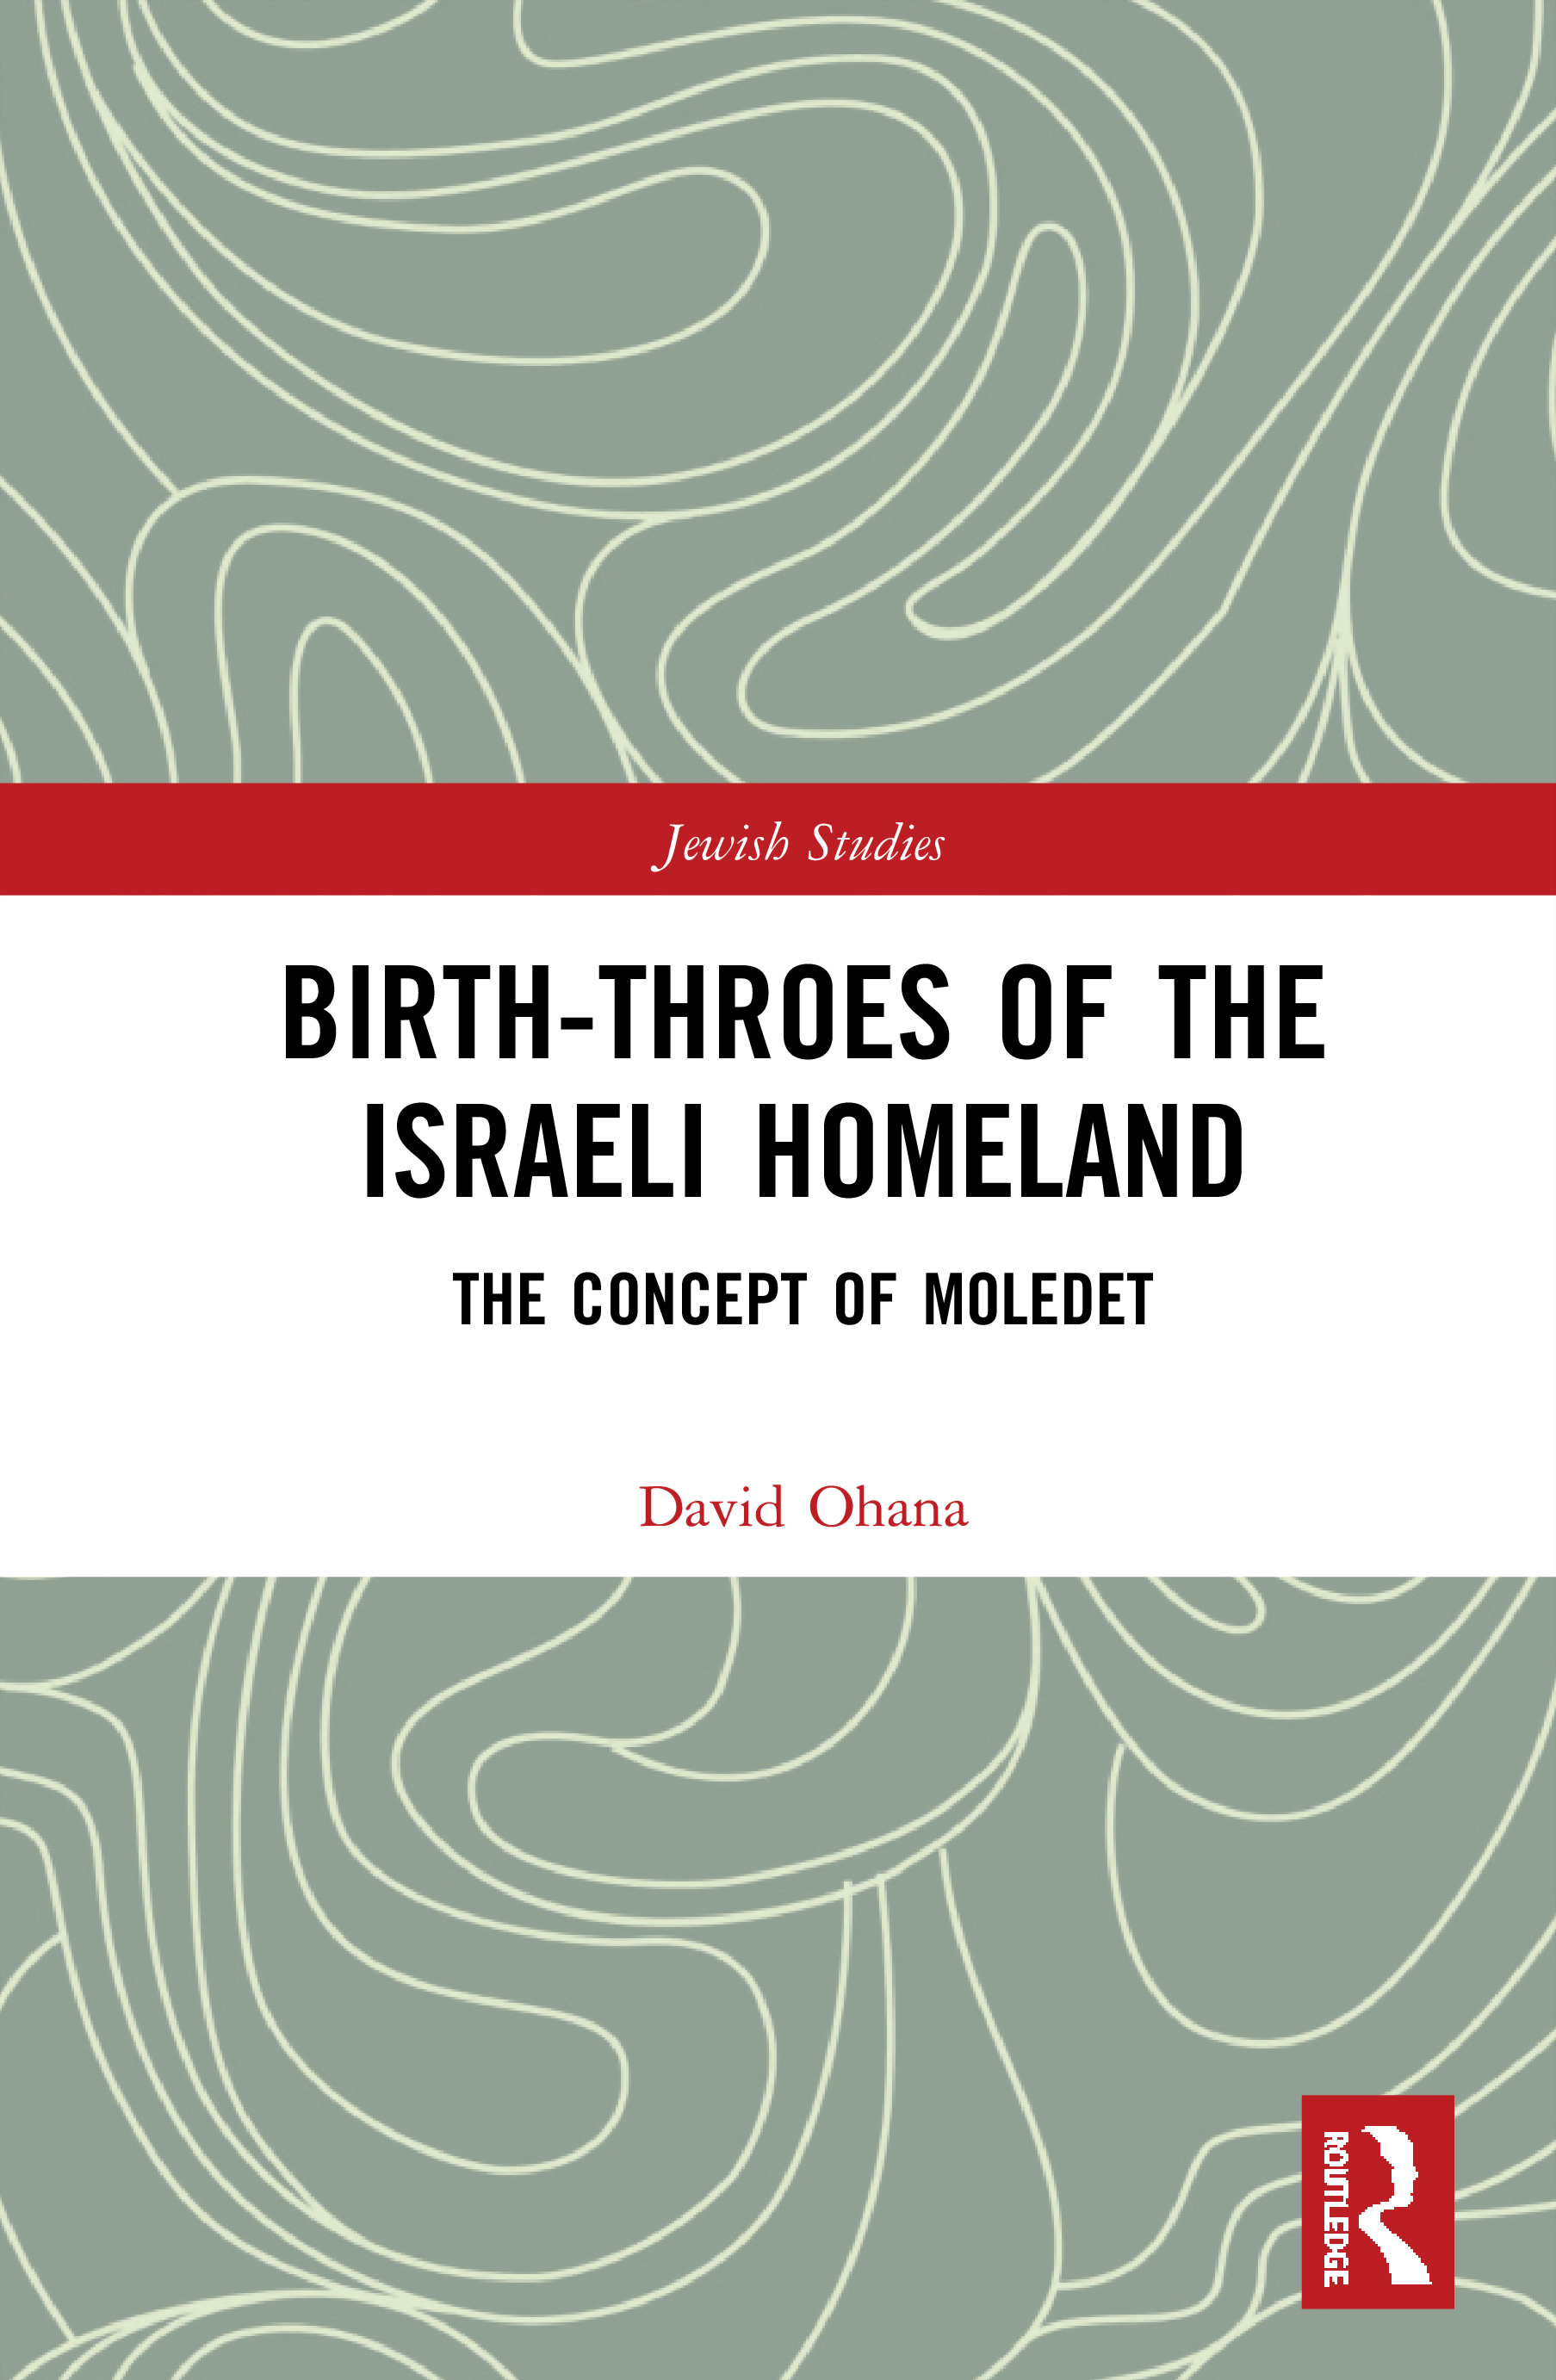 Birth-Throes of the Israeli Homeland: The Concept of Moledet book cover